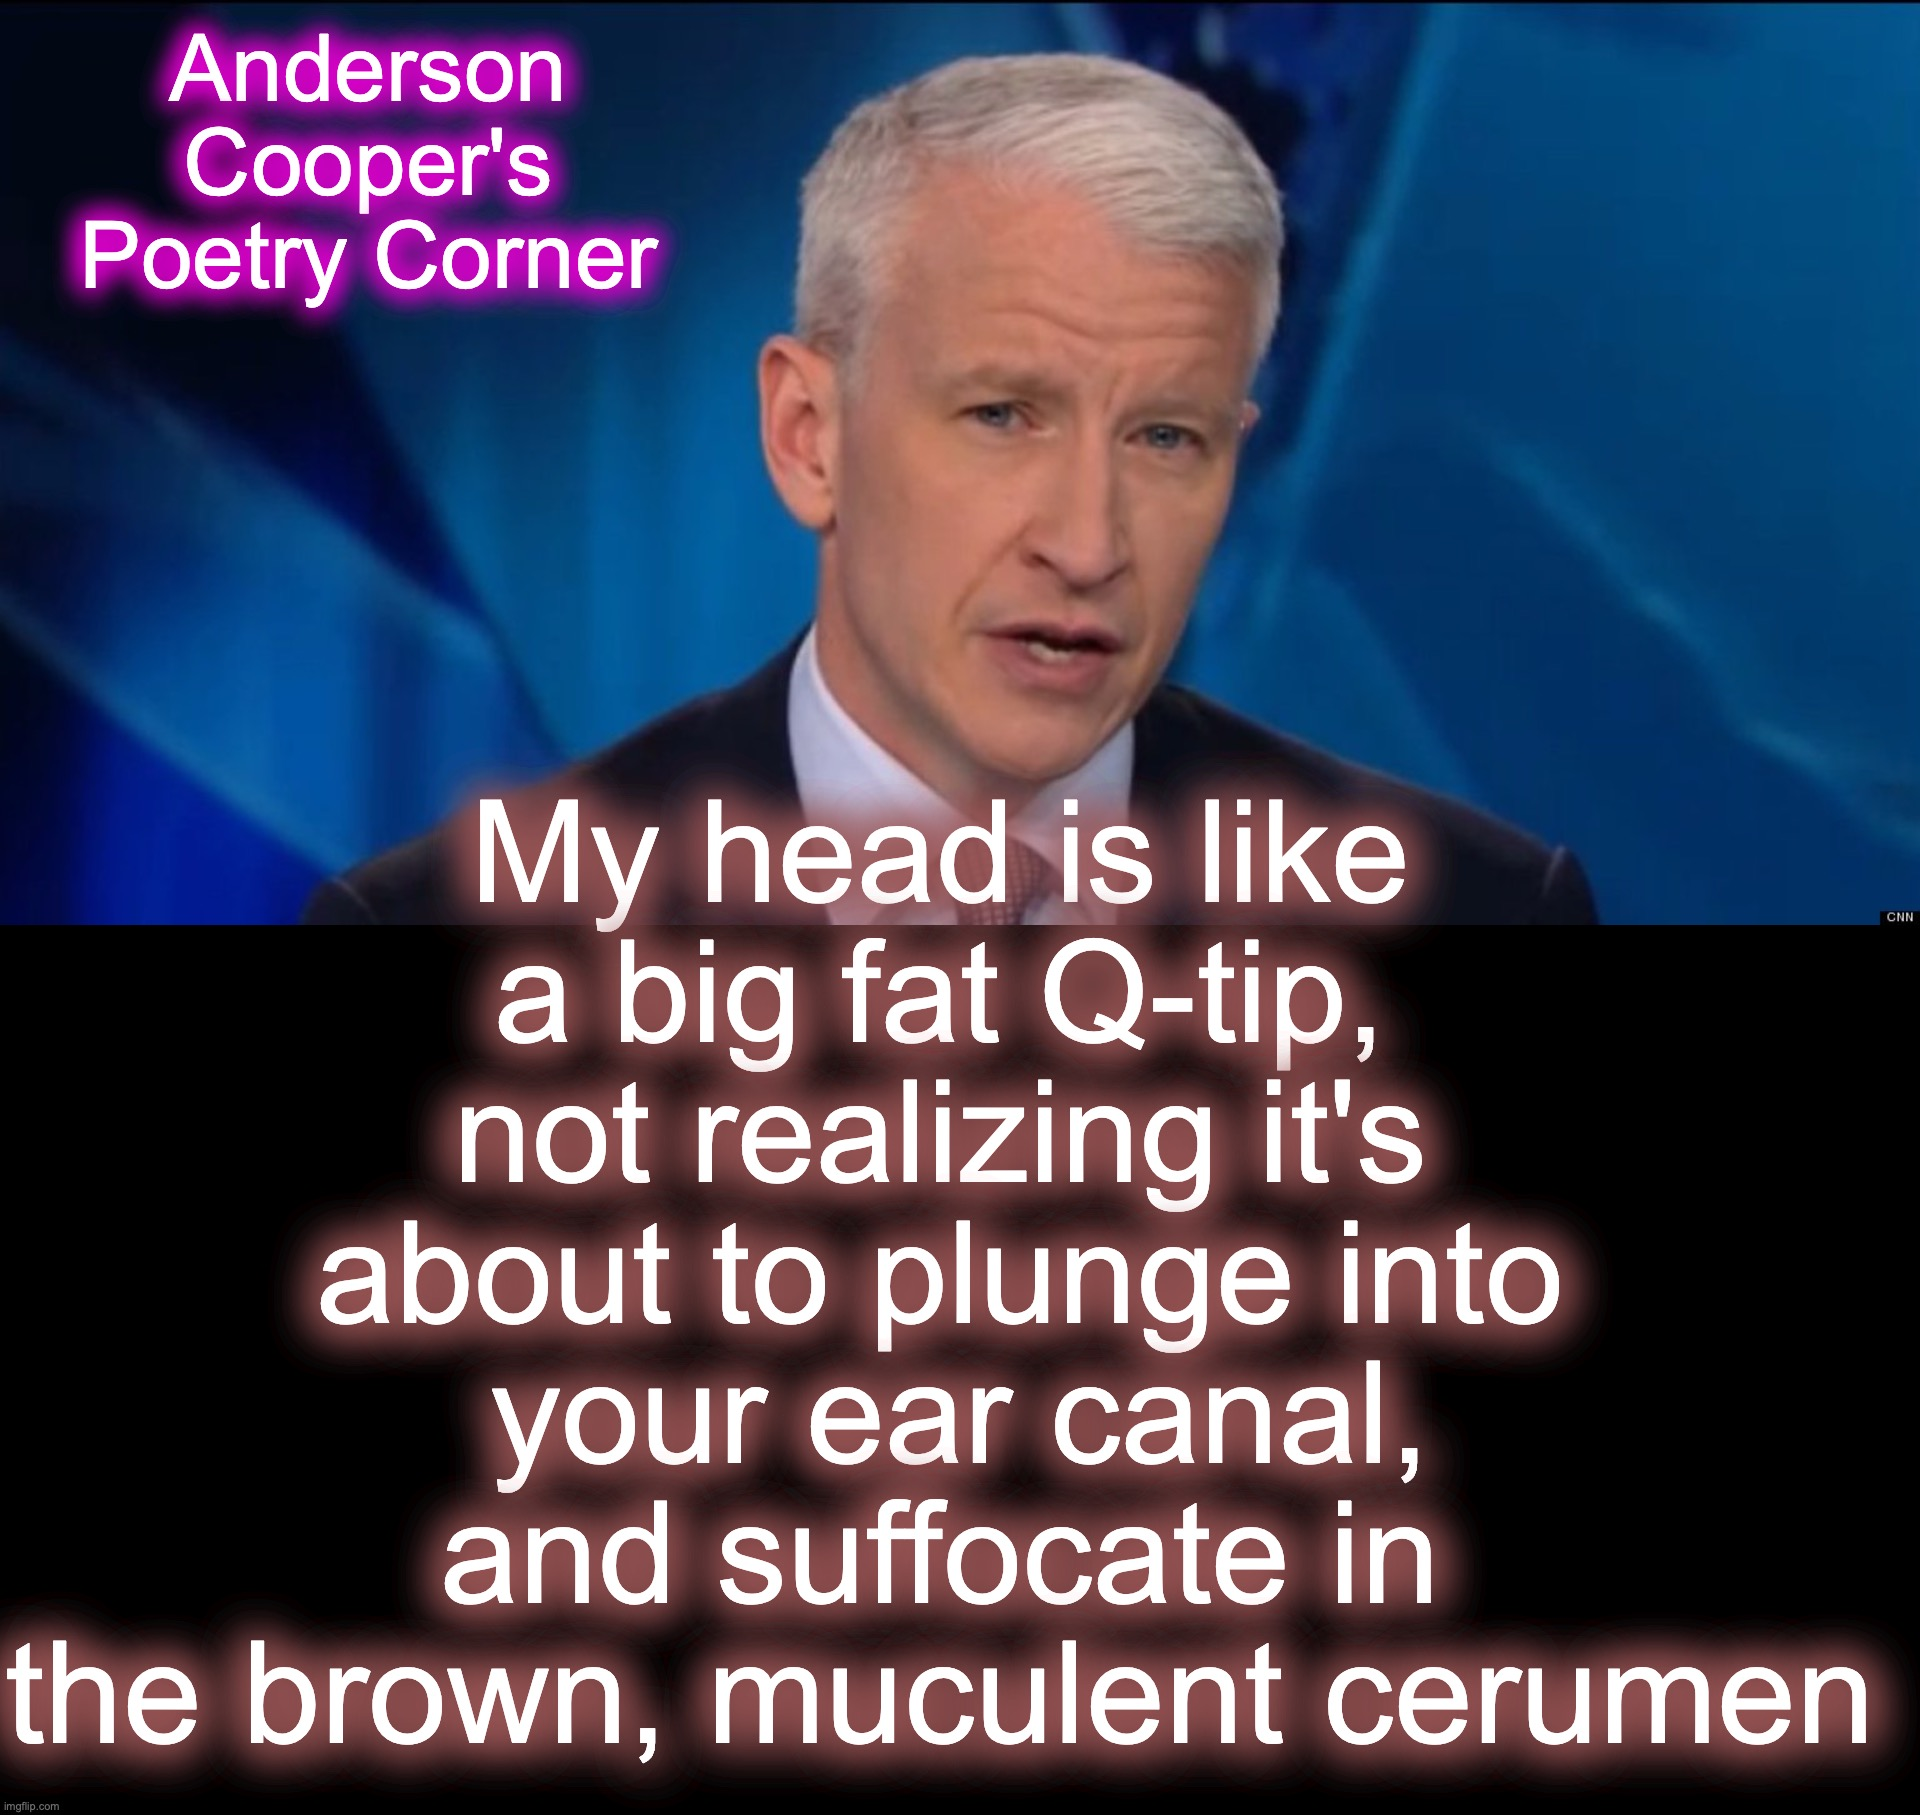 My head is like a big fat Q-tip, not realizing it's about to plunge into  your ear canal, and suffocate in the brown, muculent cerumen; Anderson Cooper's Poetry Corner | image tagged in anderson cooper,poetry | made w/ Imgflip meme maker